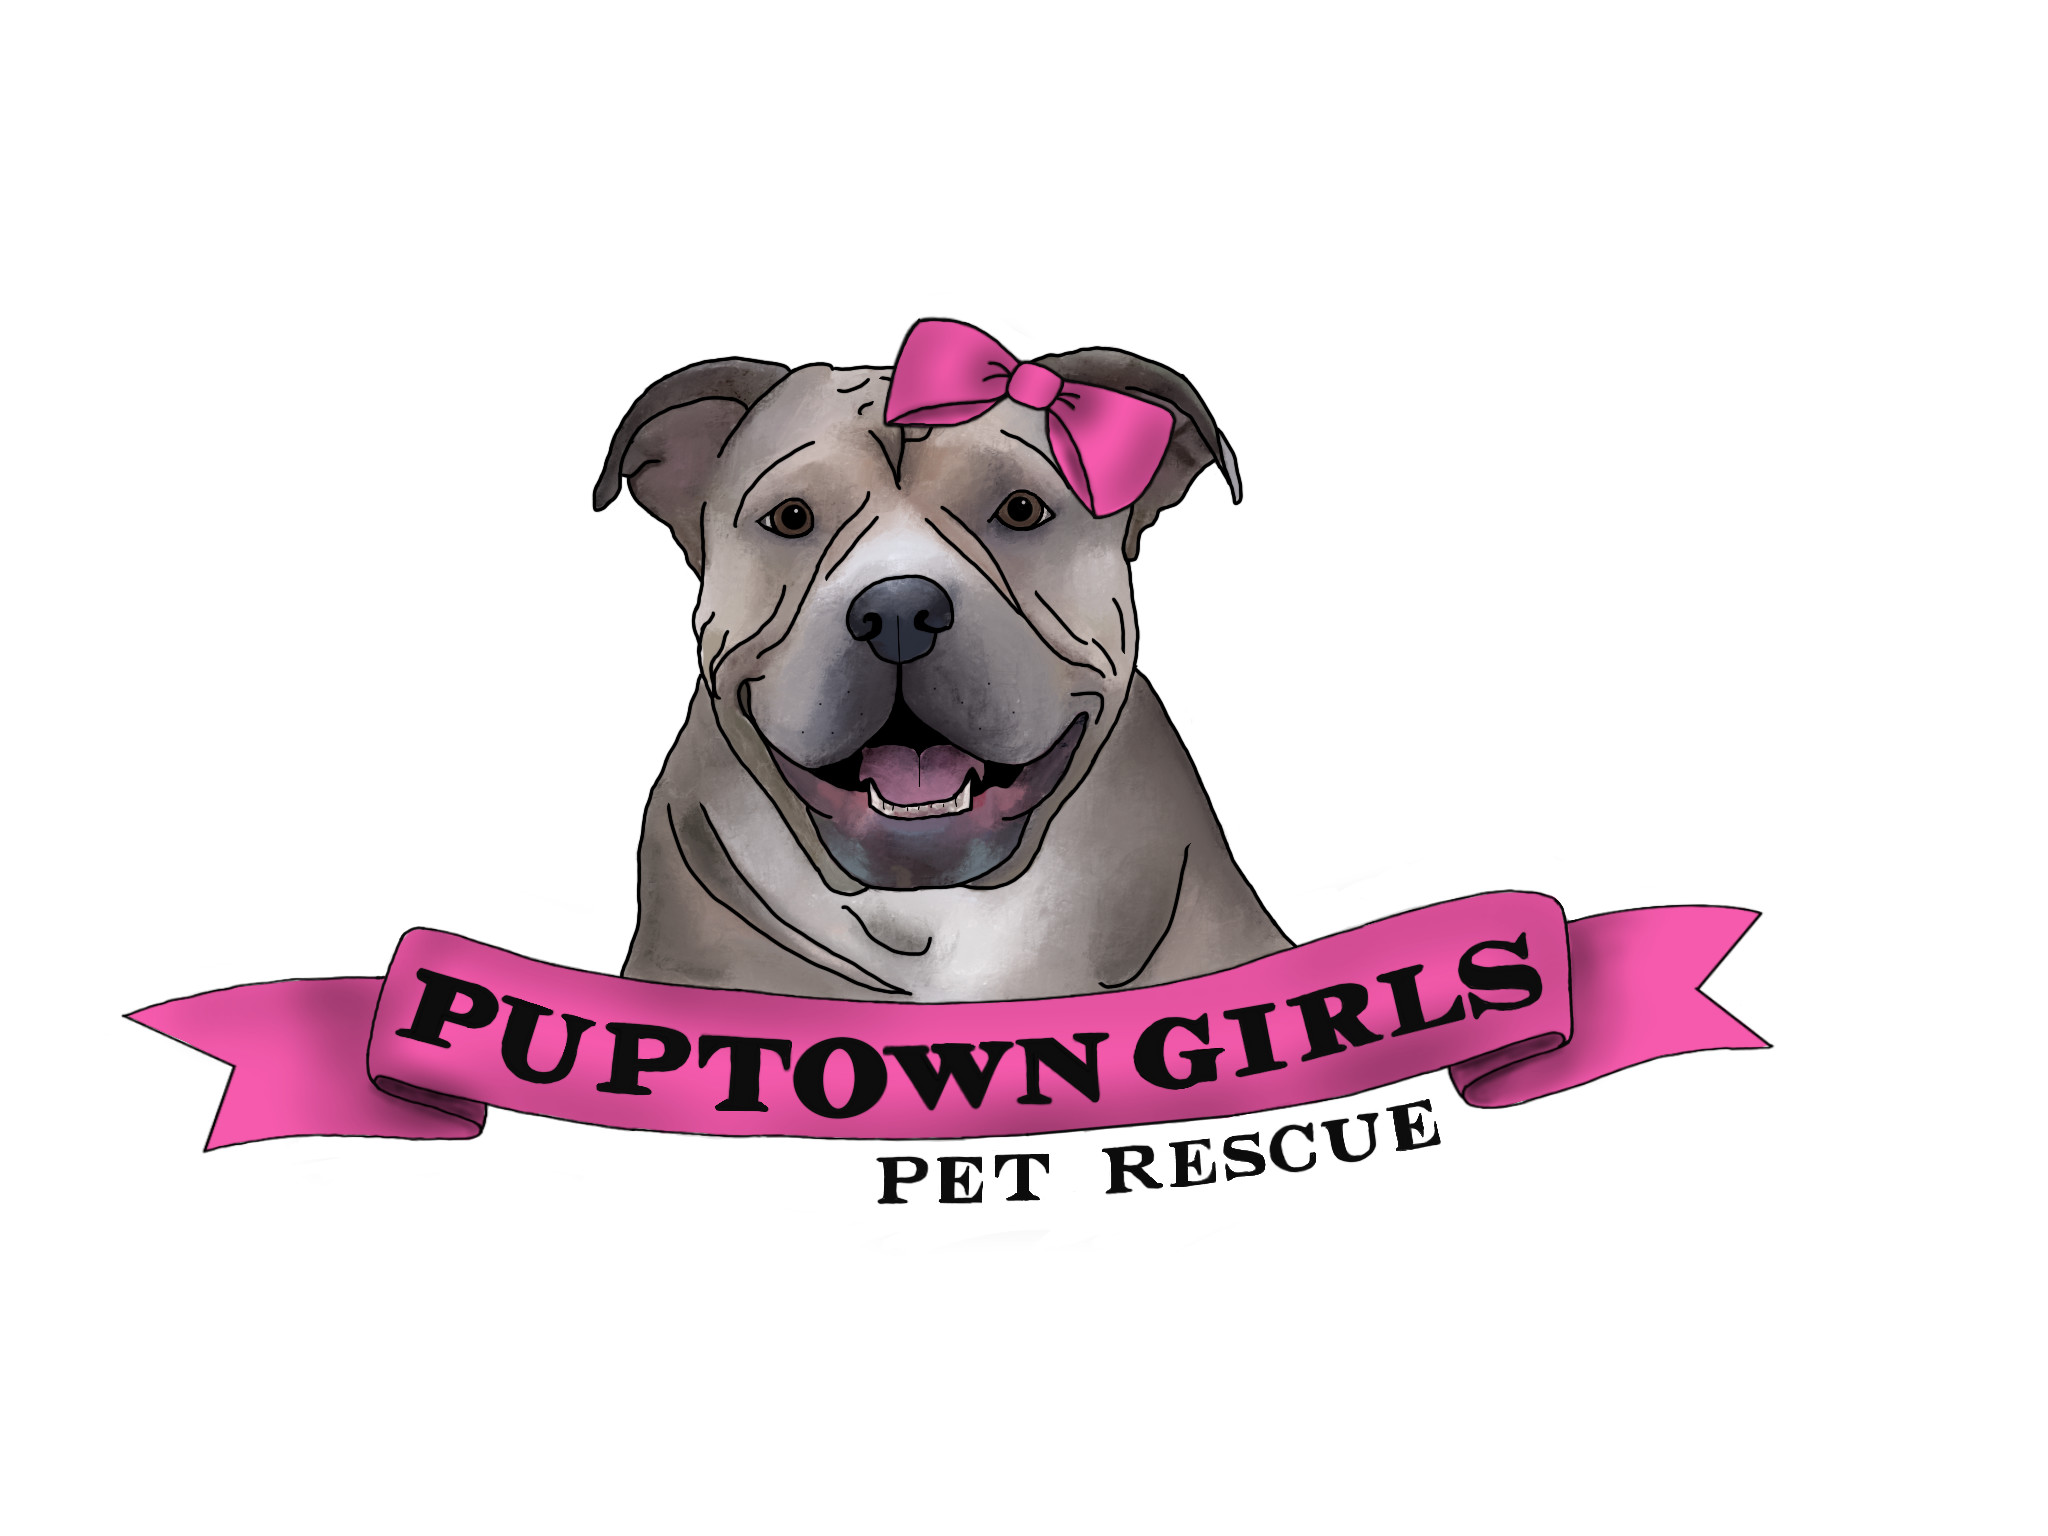 Puptown Girls Pet Rescue, Inc